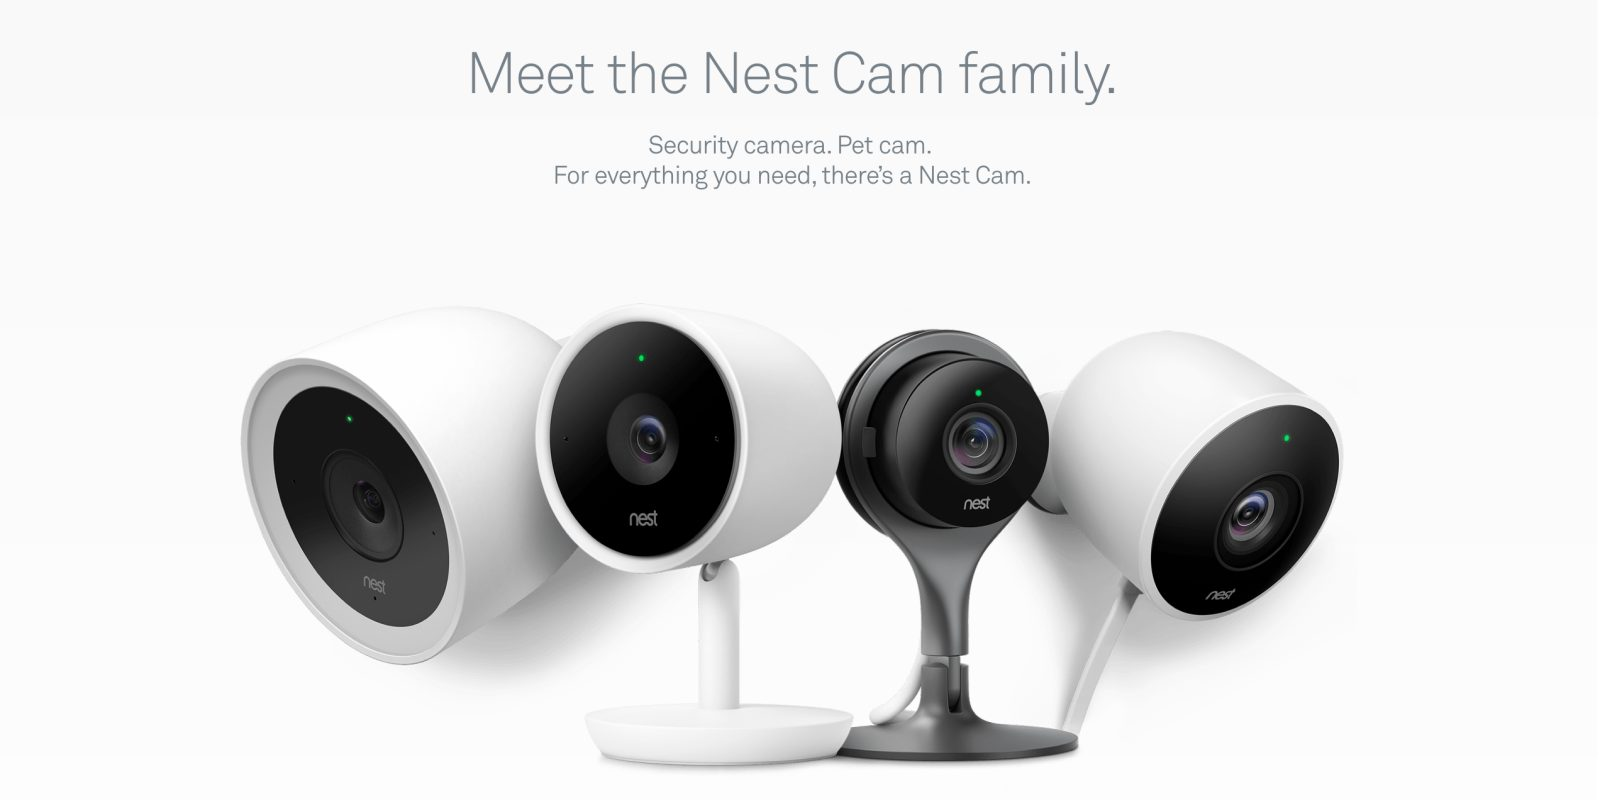 Home Depot takes up to 20% off Nest Cameras, today only: IQ